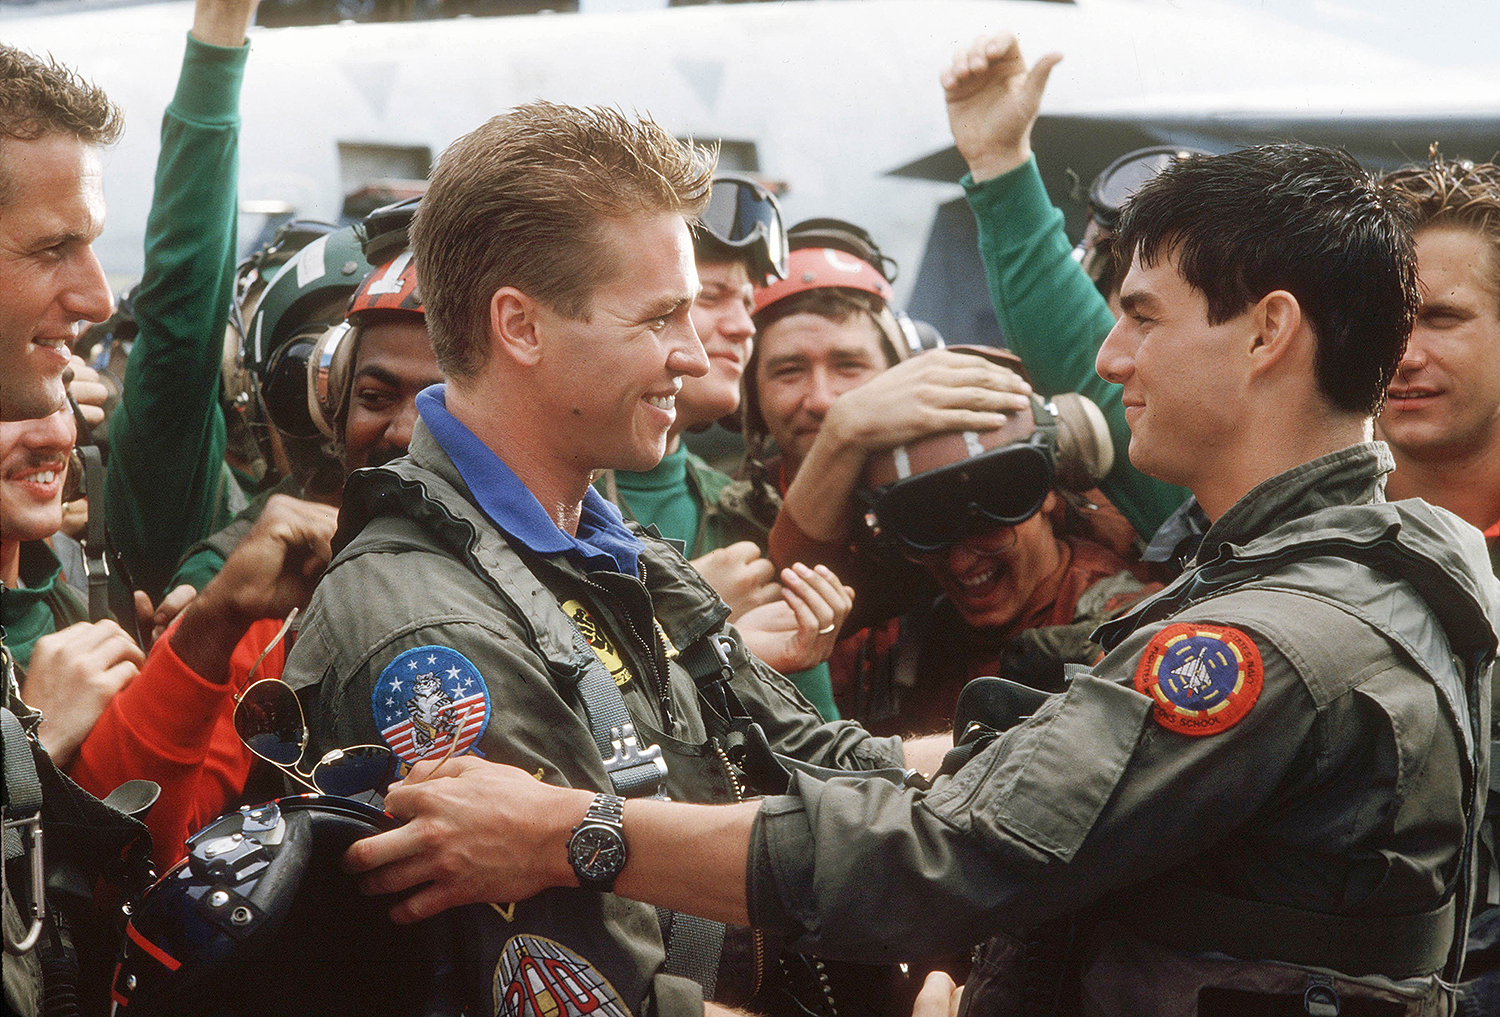 """He Has Only One Switch"", Tom Cruise's Wingman in 'Top Gun', Anthony Edwards, Says"